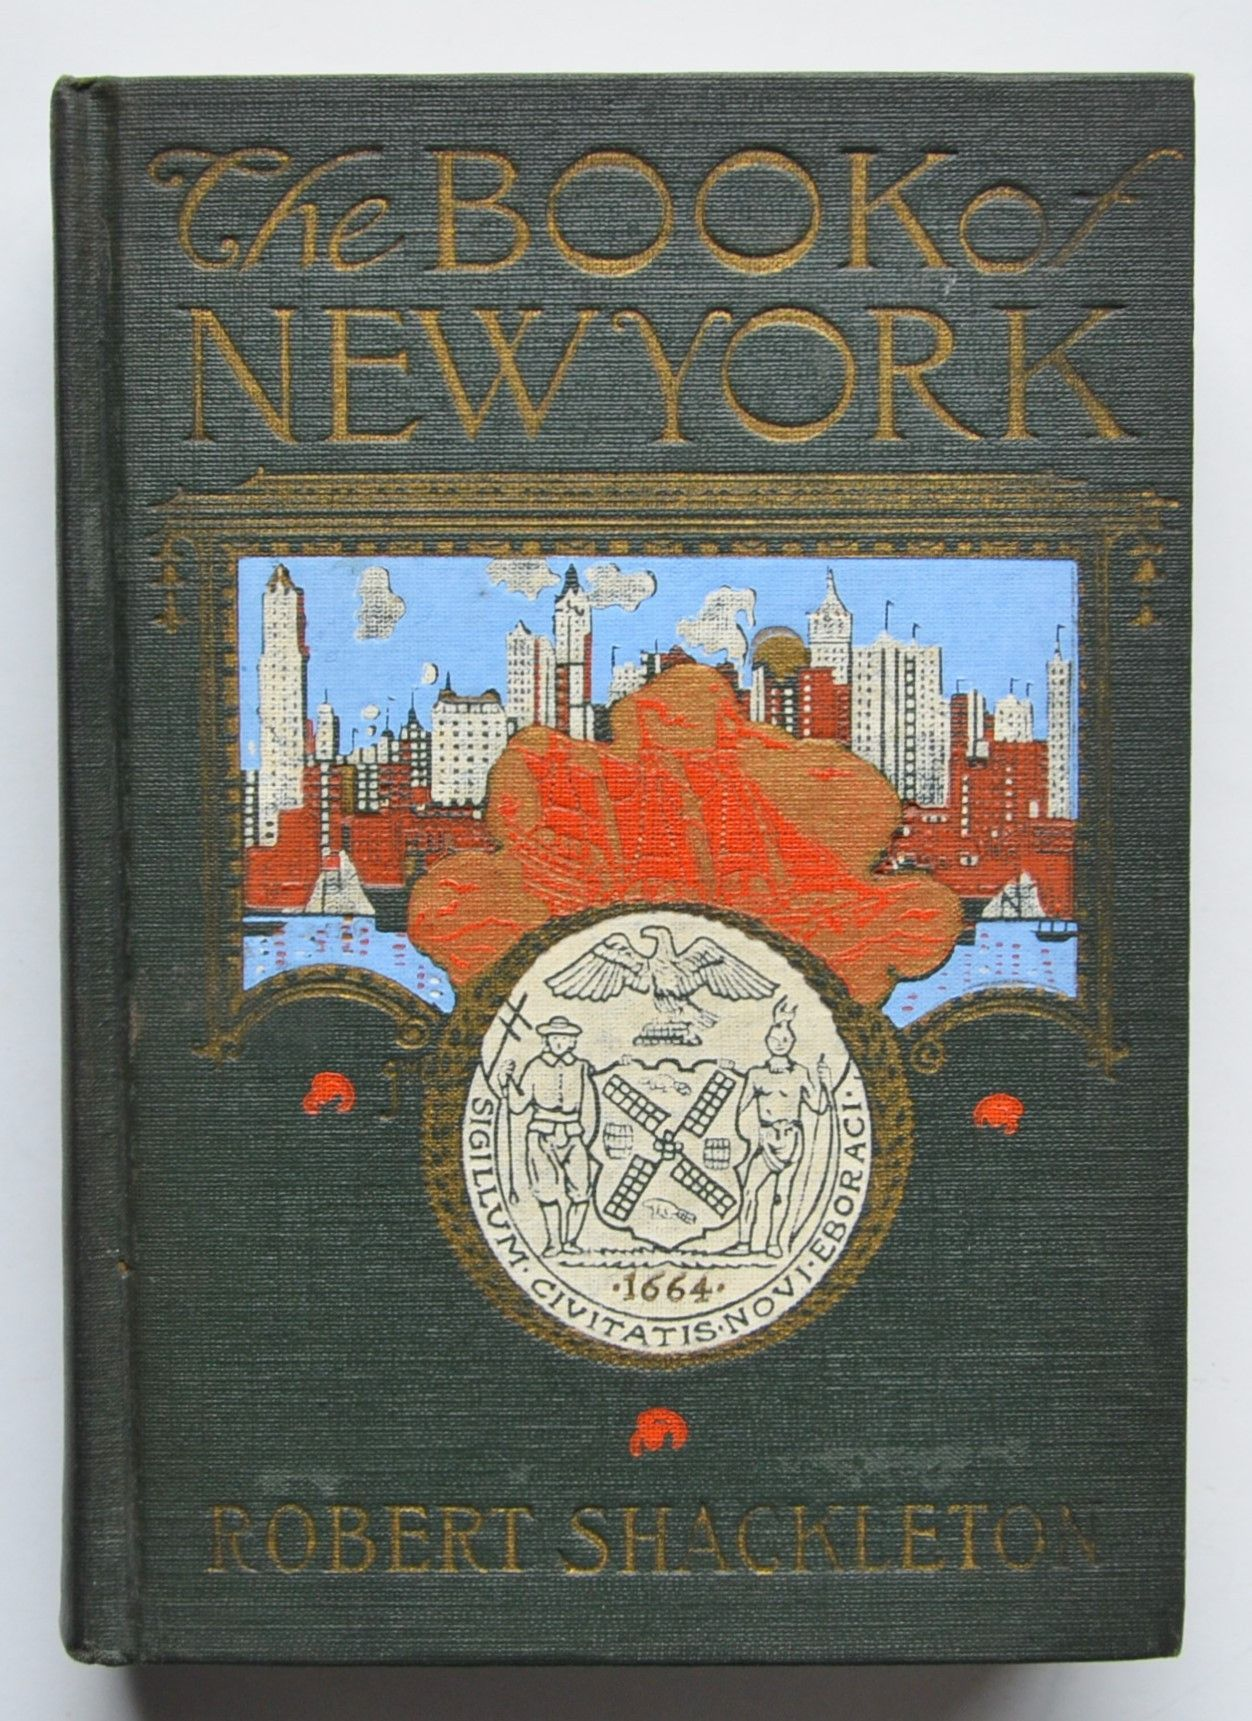 The Book of New York by Robert Shackleton ; Illustrated with photographs and drawings by R.L. Boyer.